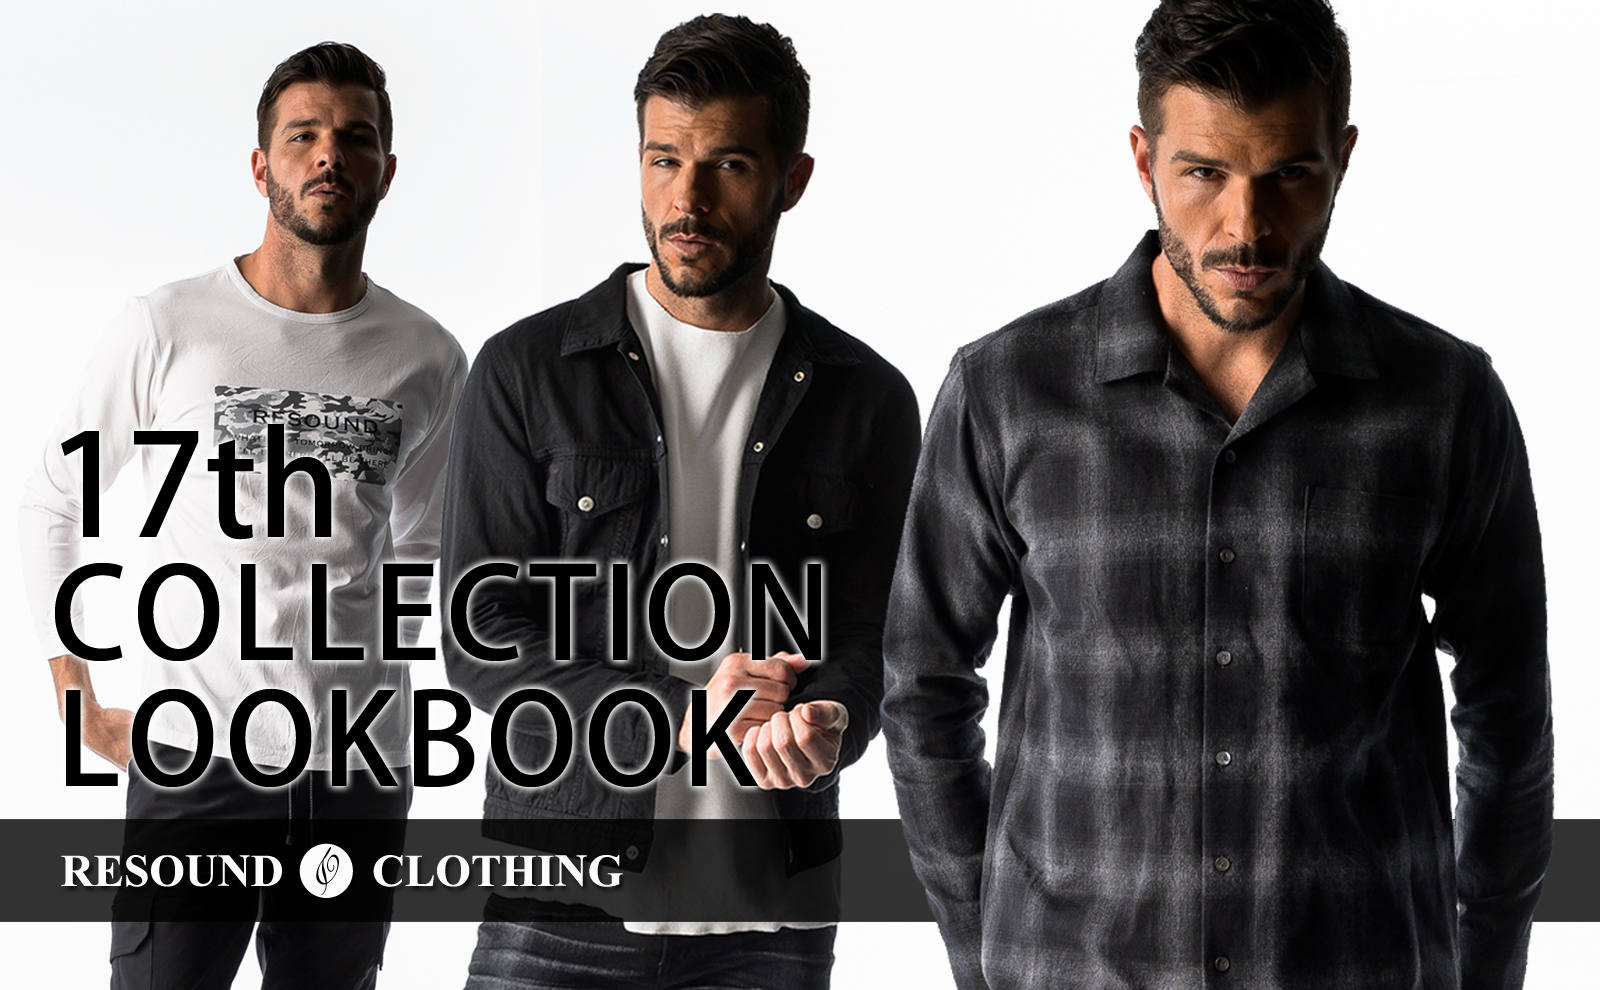 17TH COLLECTION LOOKBOOK